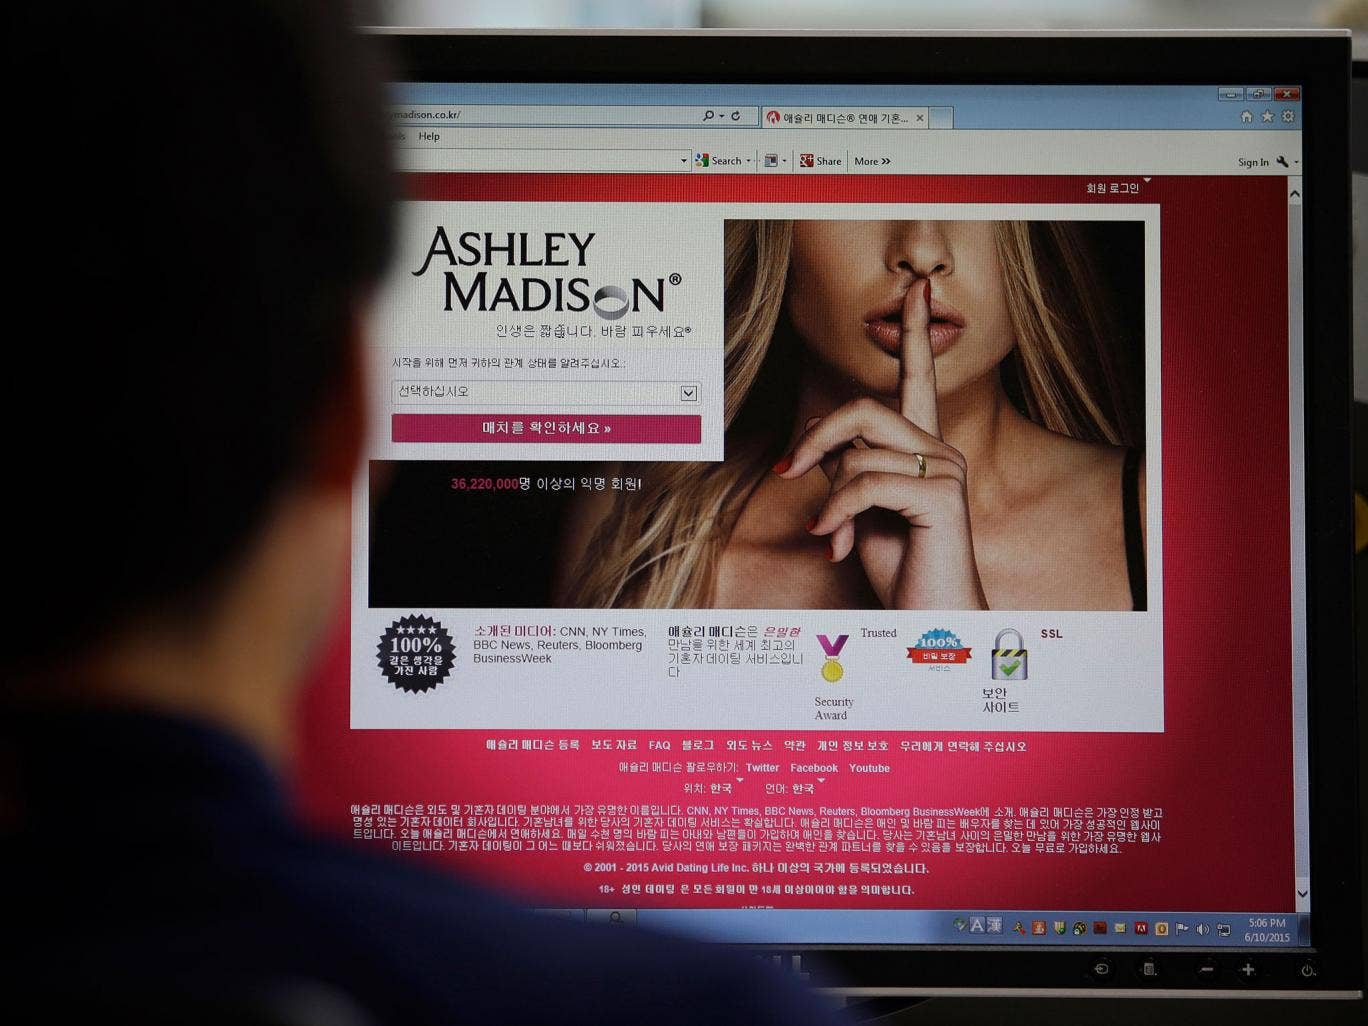 True confessions of an online dating addict